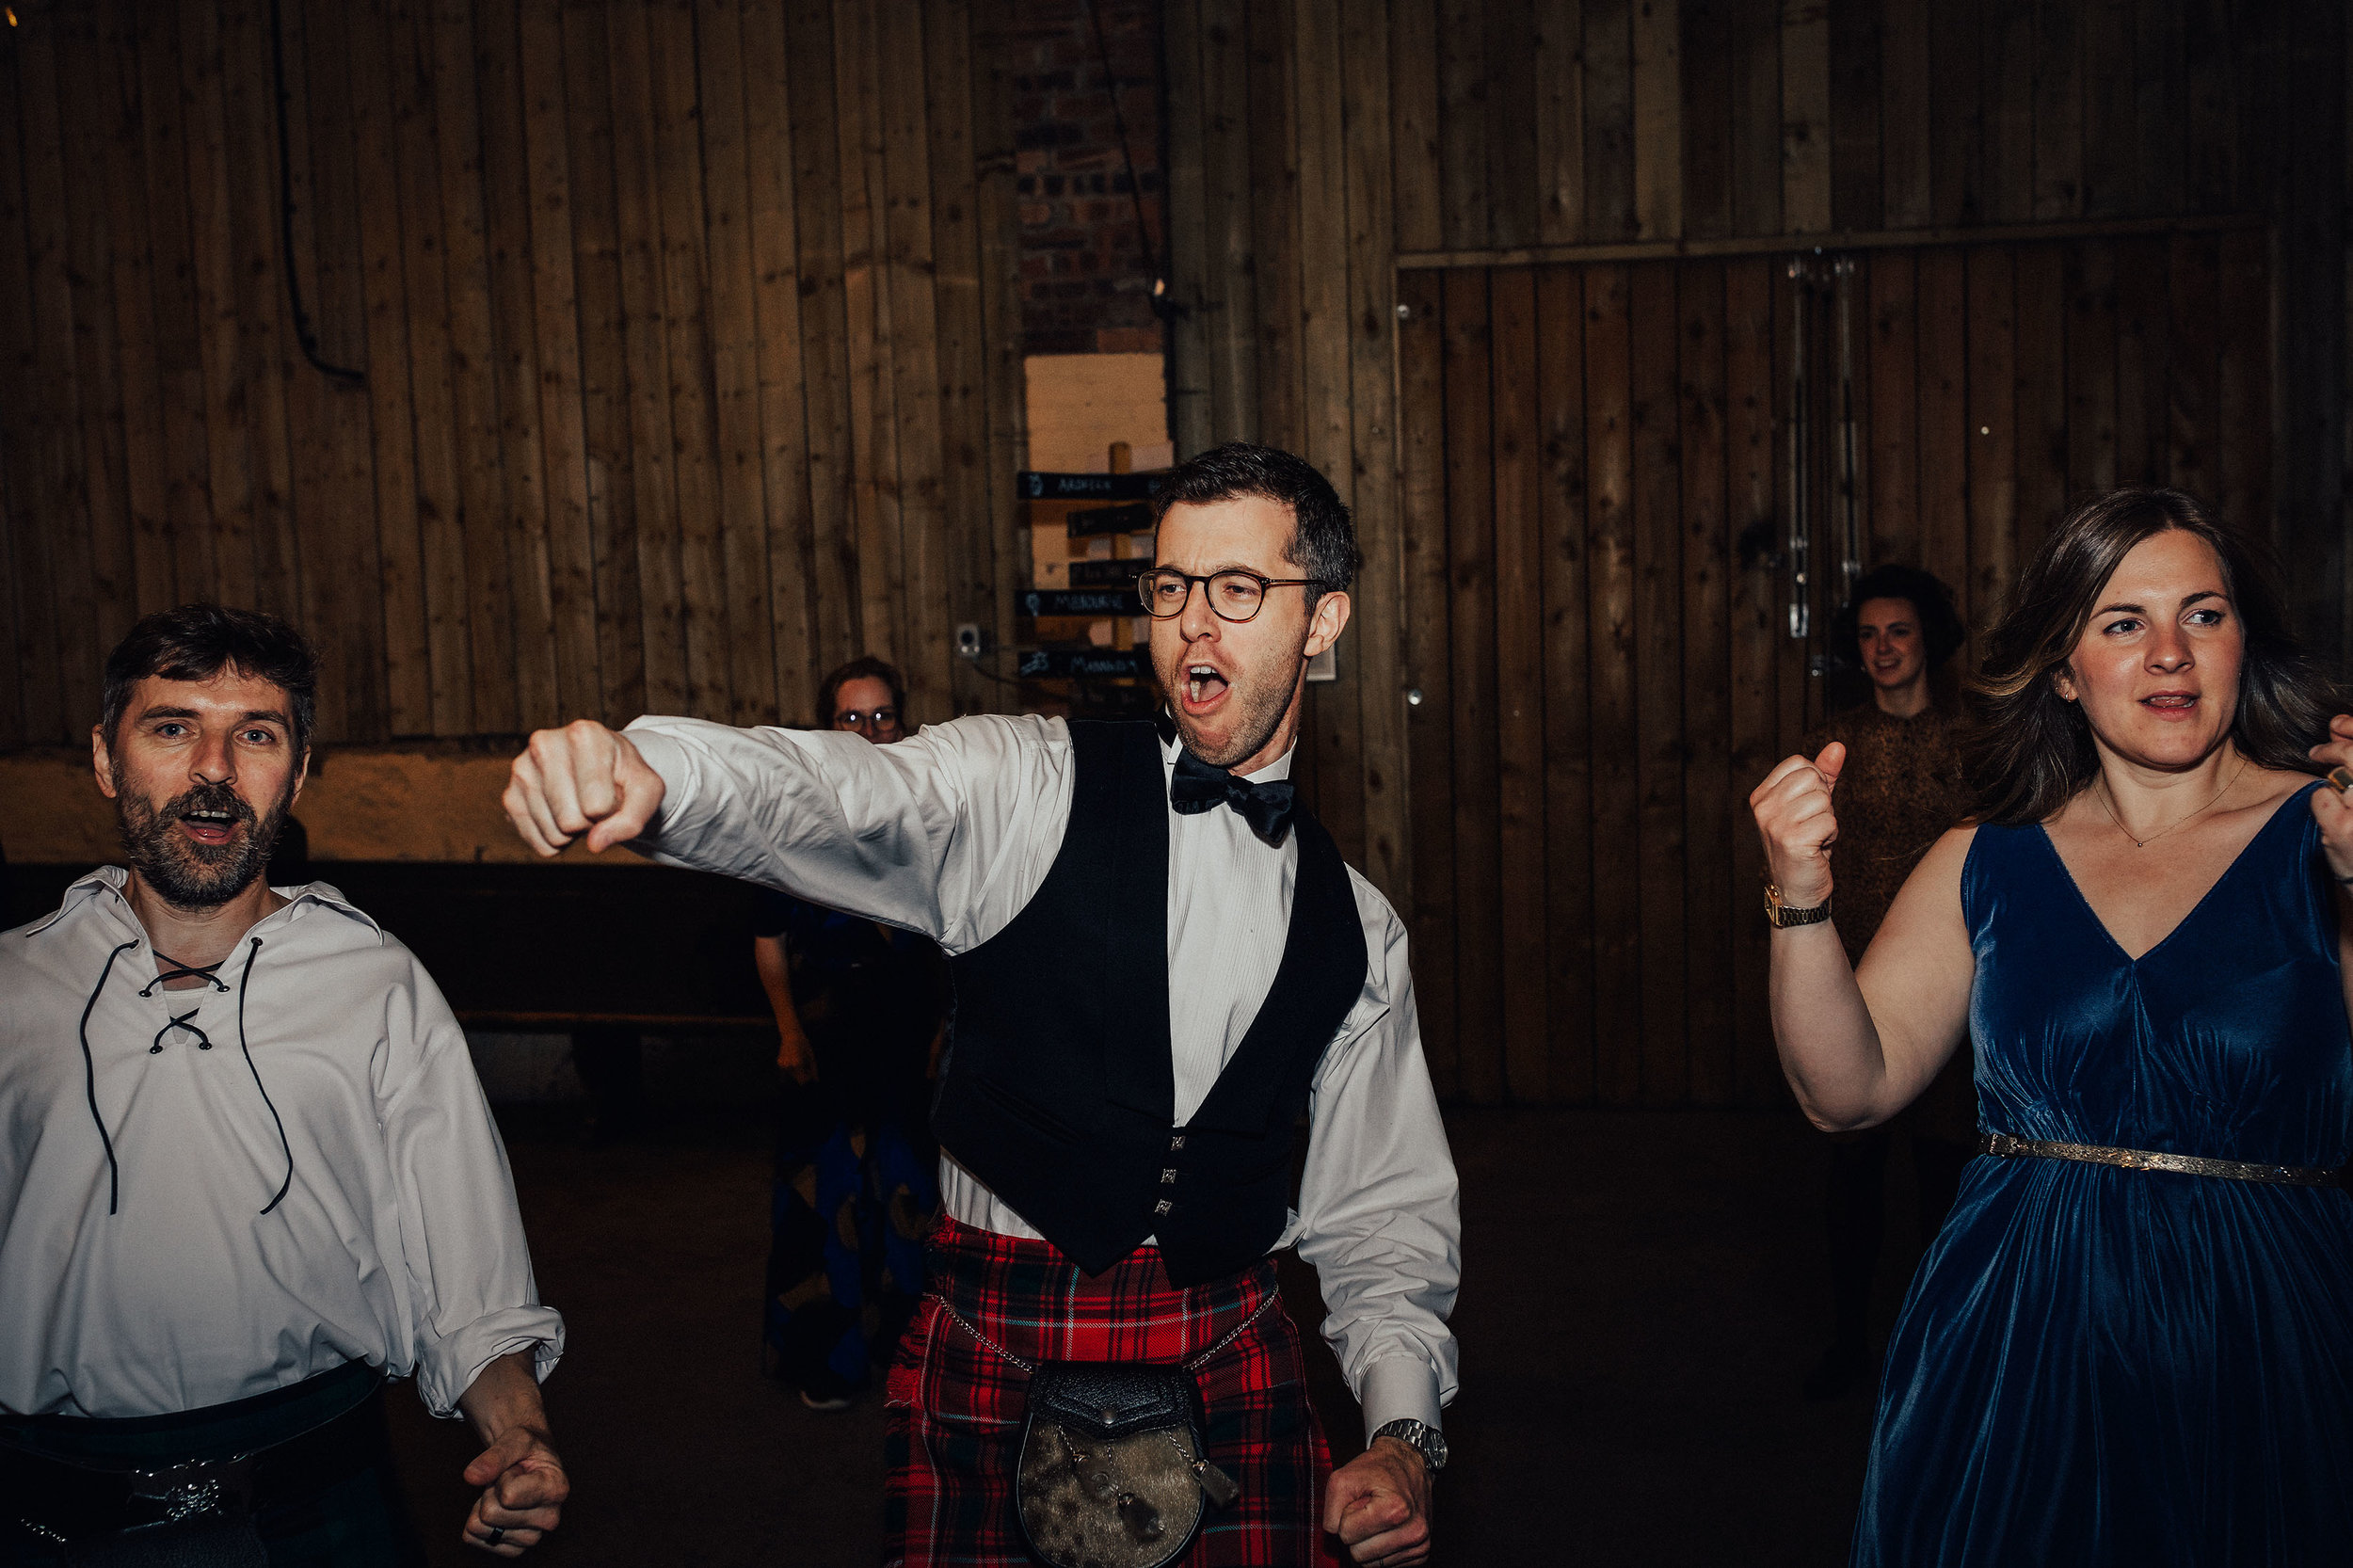 COMRIE_CROFT_WEDDINGS_PJ_PHILLIPS_PHOTOGRAPHY_197.jpg